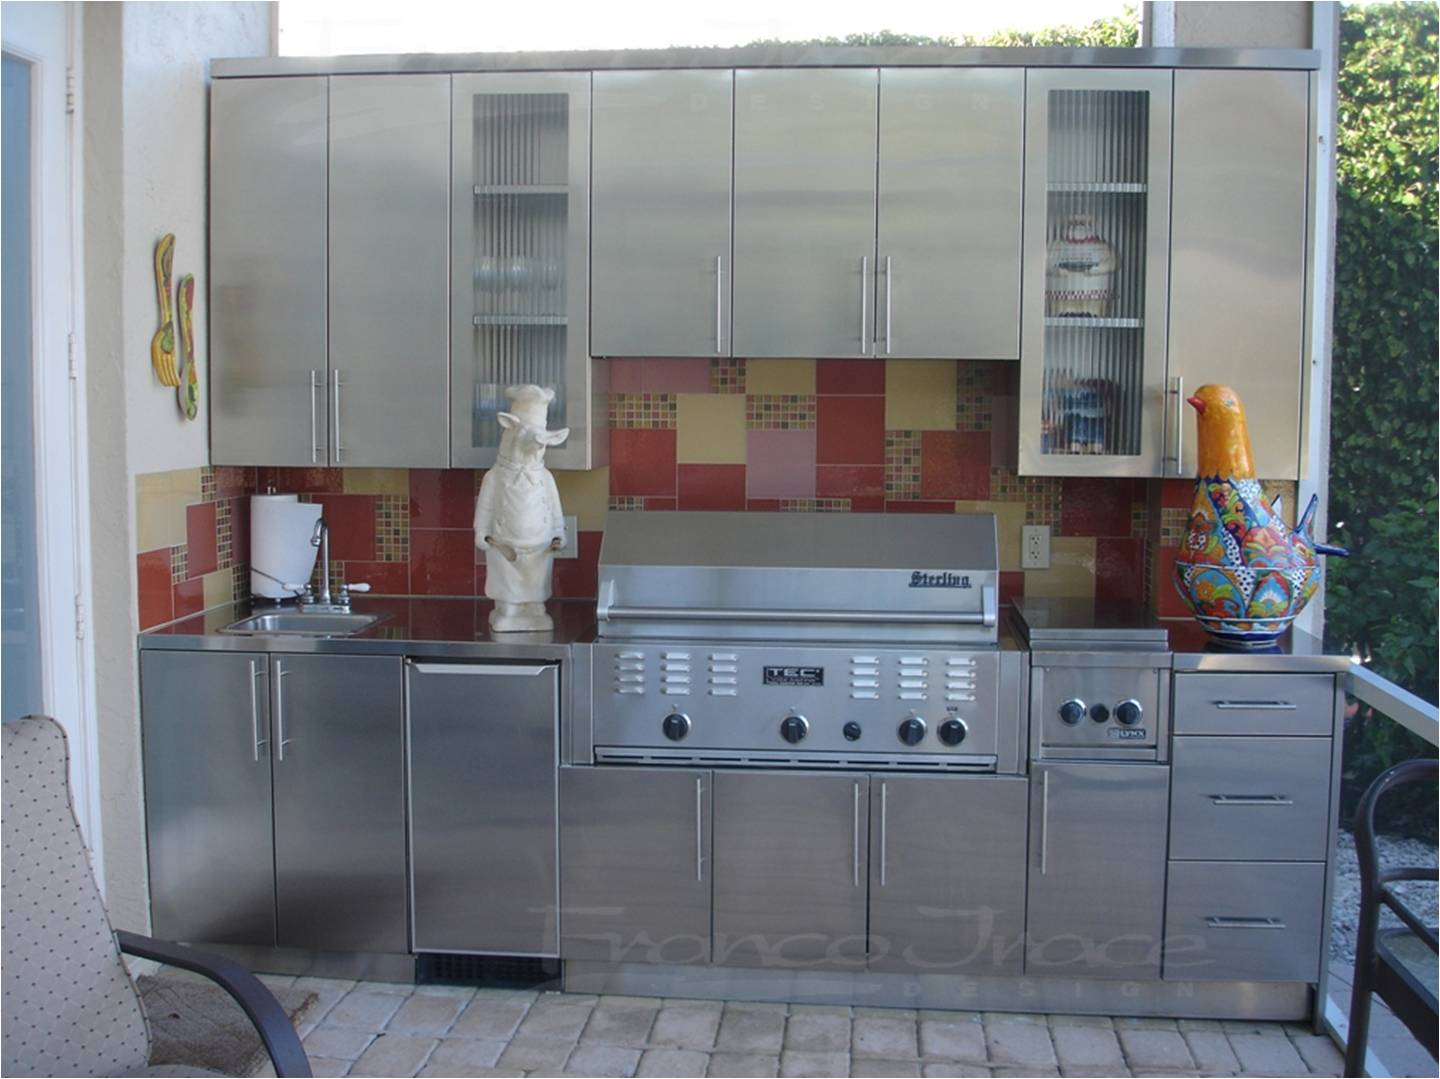 kitchencabinetscorp stainless steel kitchen cabinets PRODUCT DESIGNED AND PATENTED BY